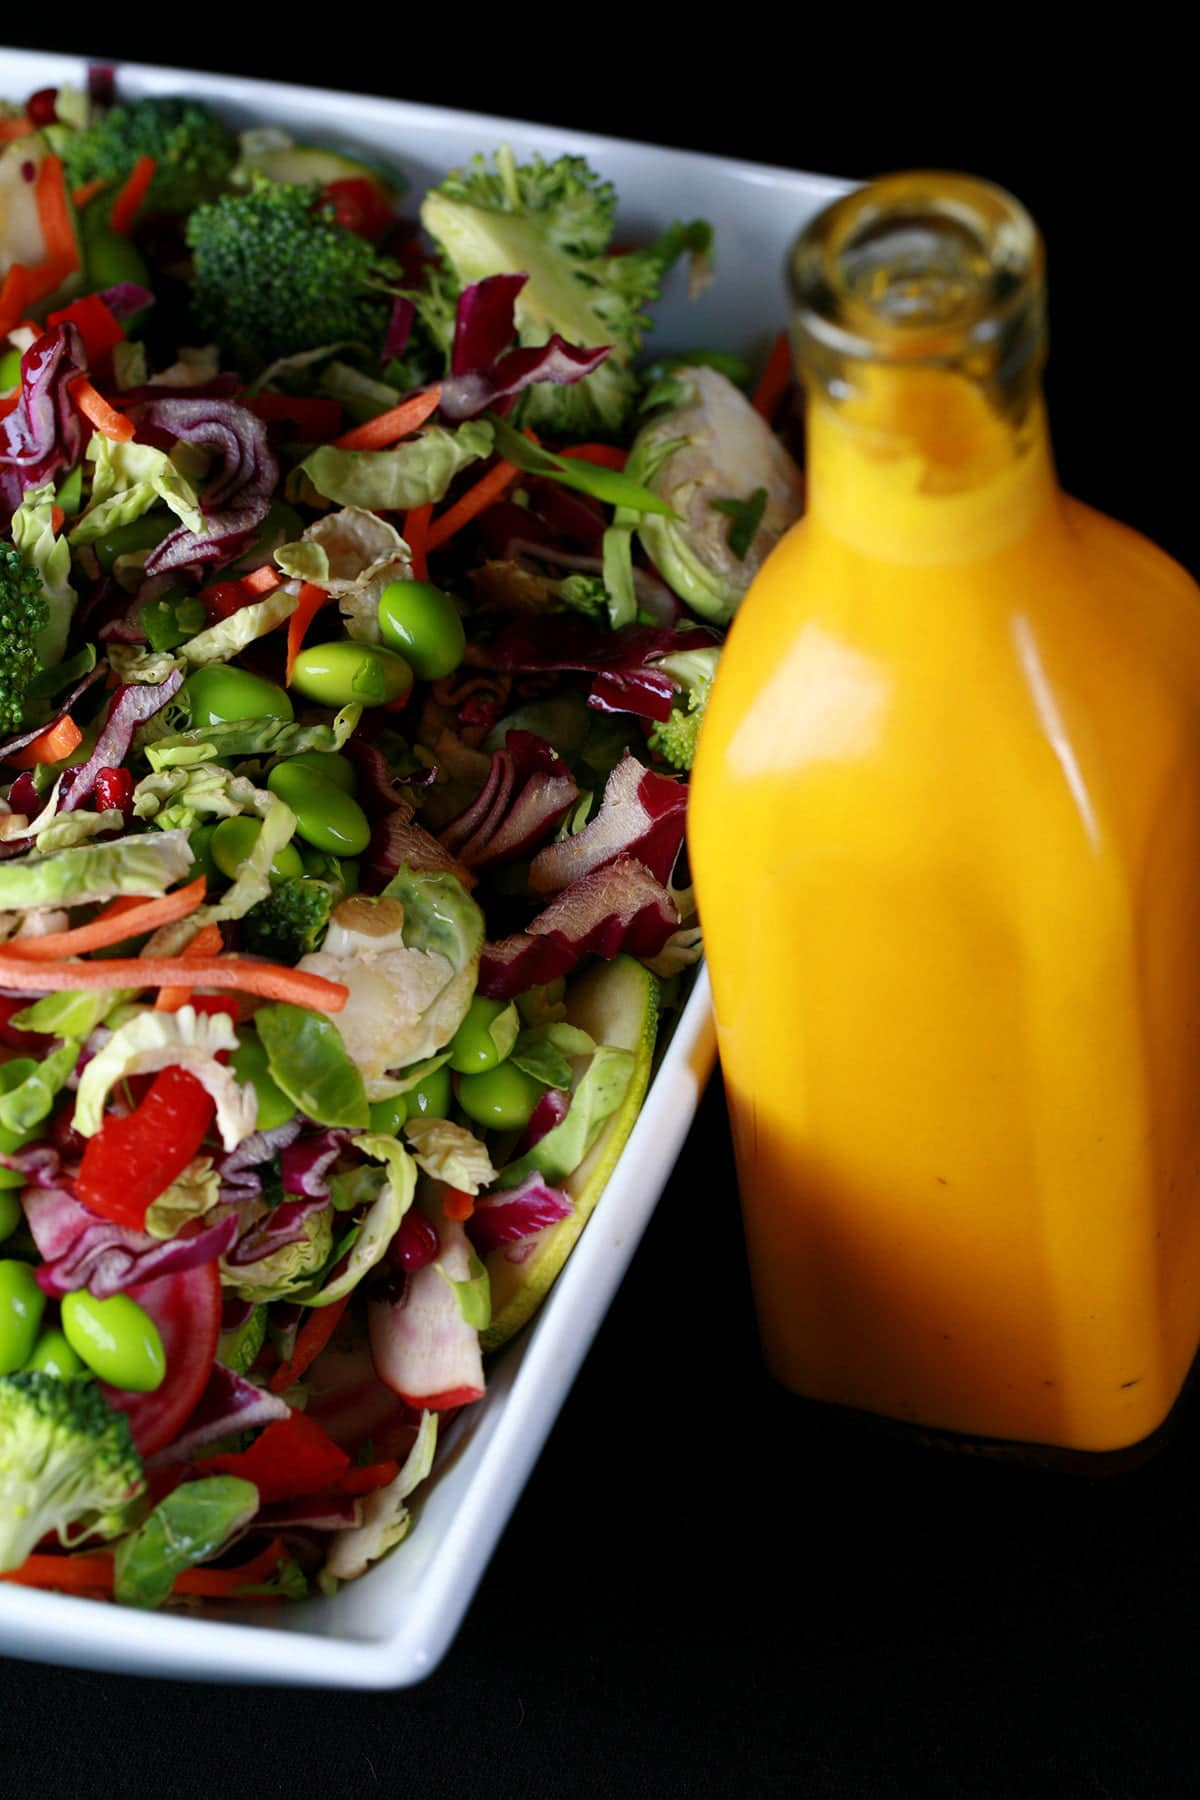 A close up view of rainbow salad. Cucumber slices, edamame, red peppers, carrot, purple cabbage, and red onions are all visible. The salad is in a large white bowl, with a bottle of a bright orange carrot ginger dressing next to it.